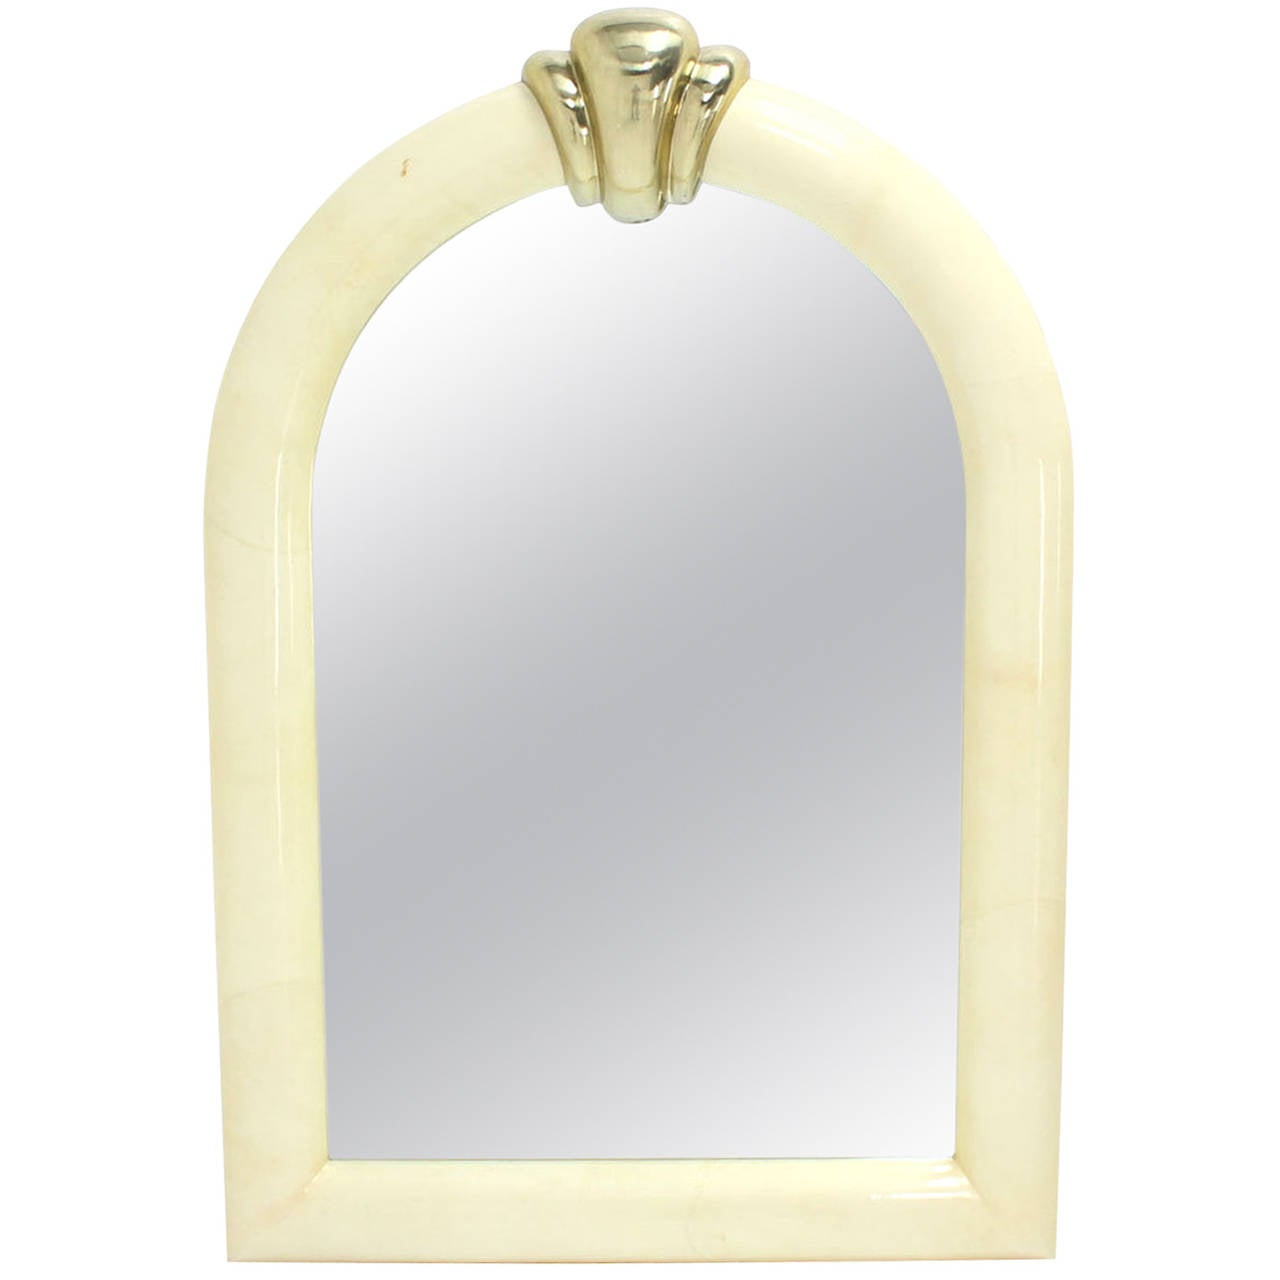 Large arch dome shape goatskin wall mirror for sale at 1stdibs for Large wall mirrors for sale